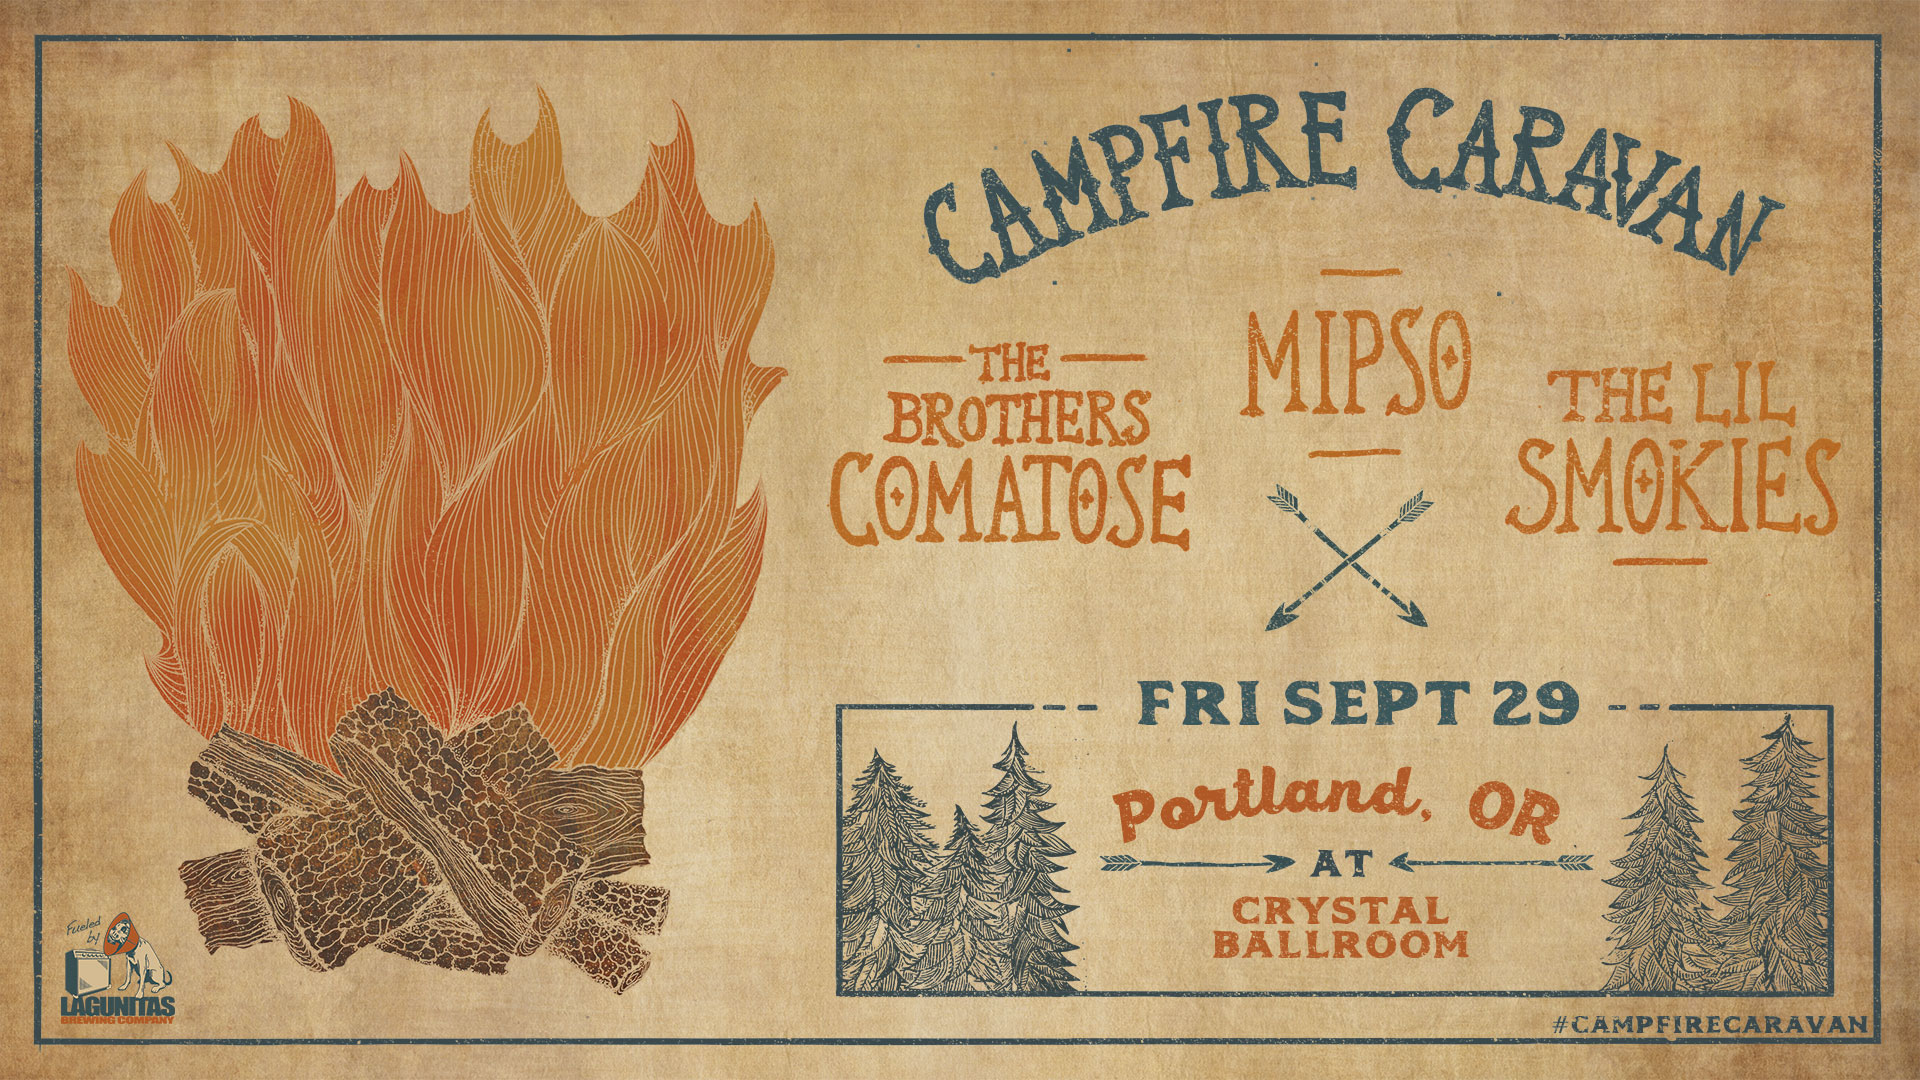 """Campfire Caravan"" featuring The Brothers Comatose, The Lil' Smokies, & Mipso"